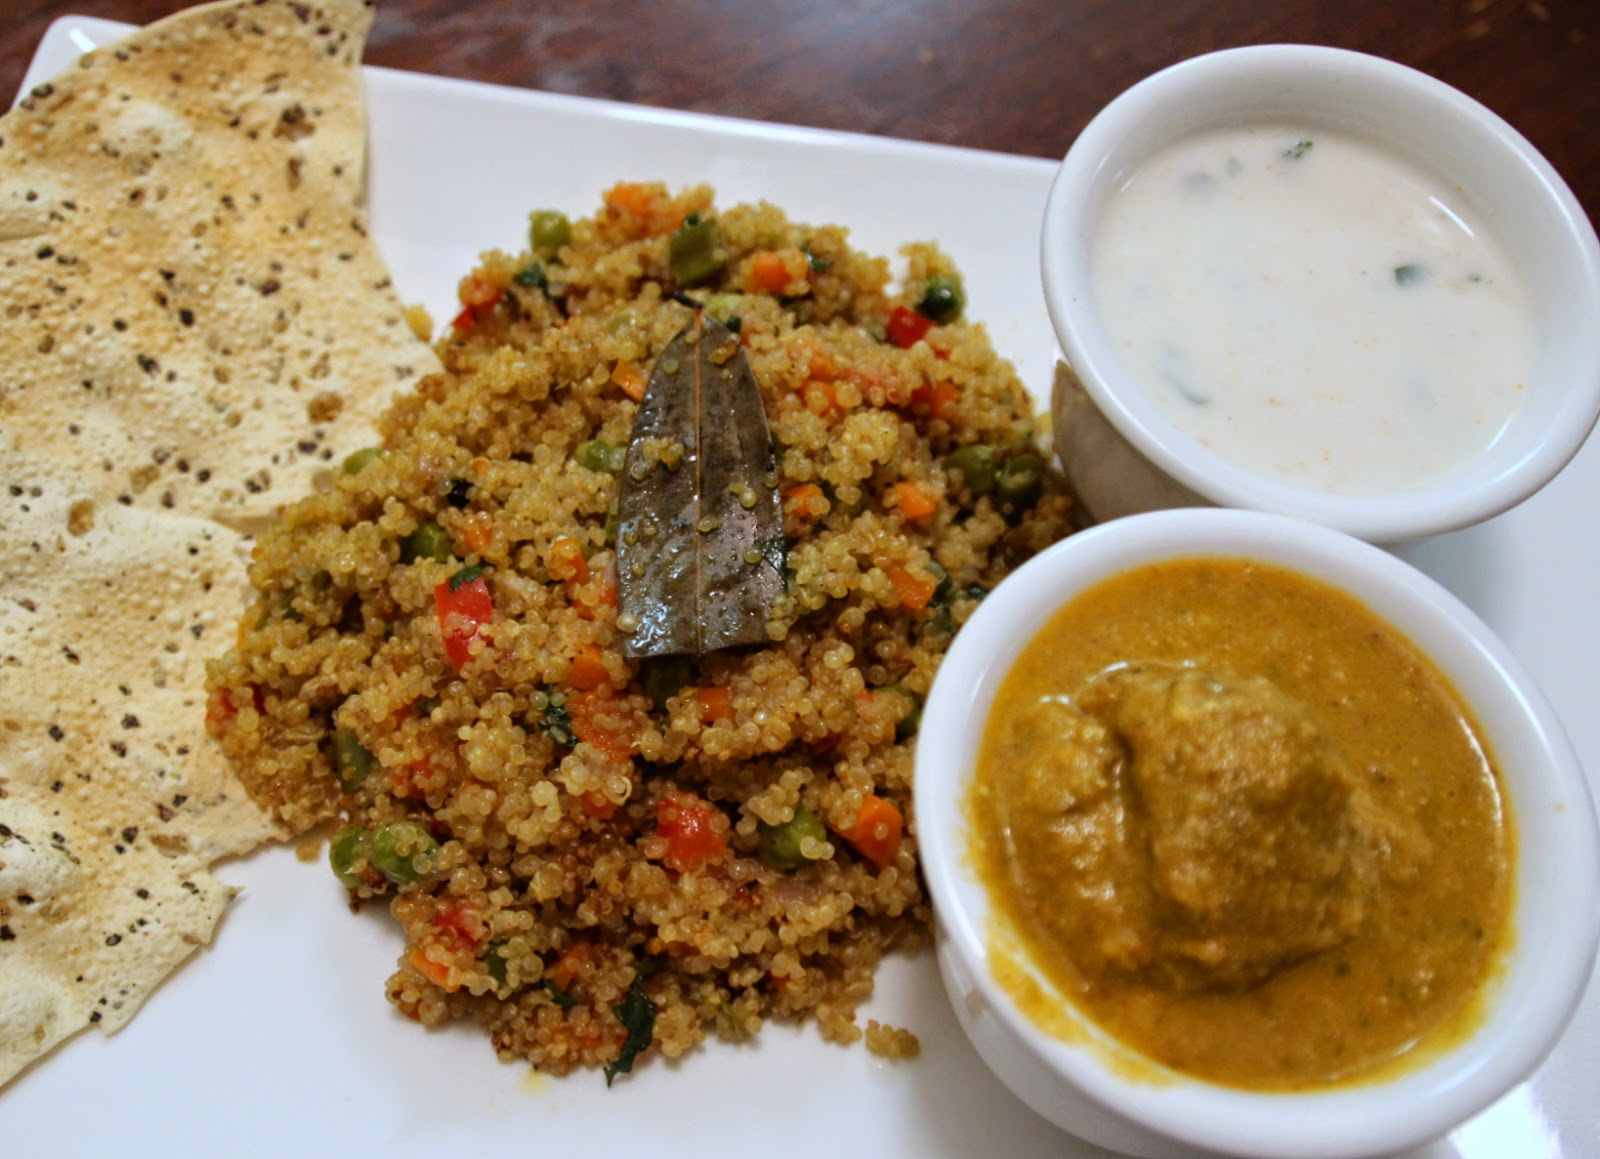 Delicious and healthy side for rotis, rice, and more